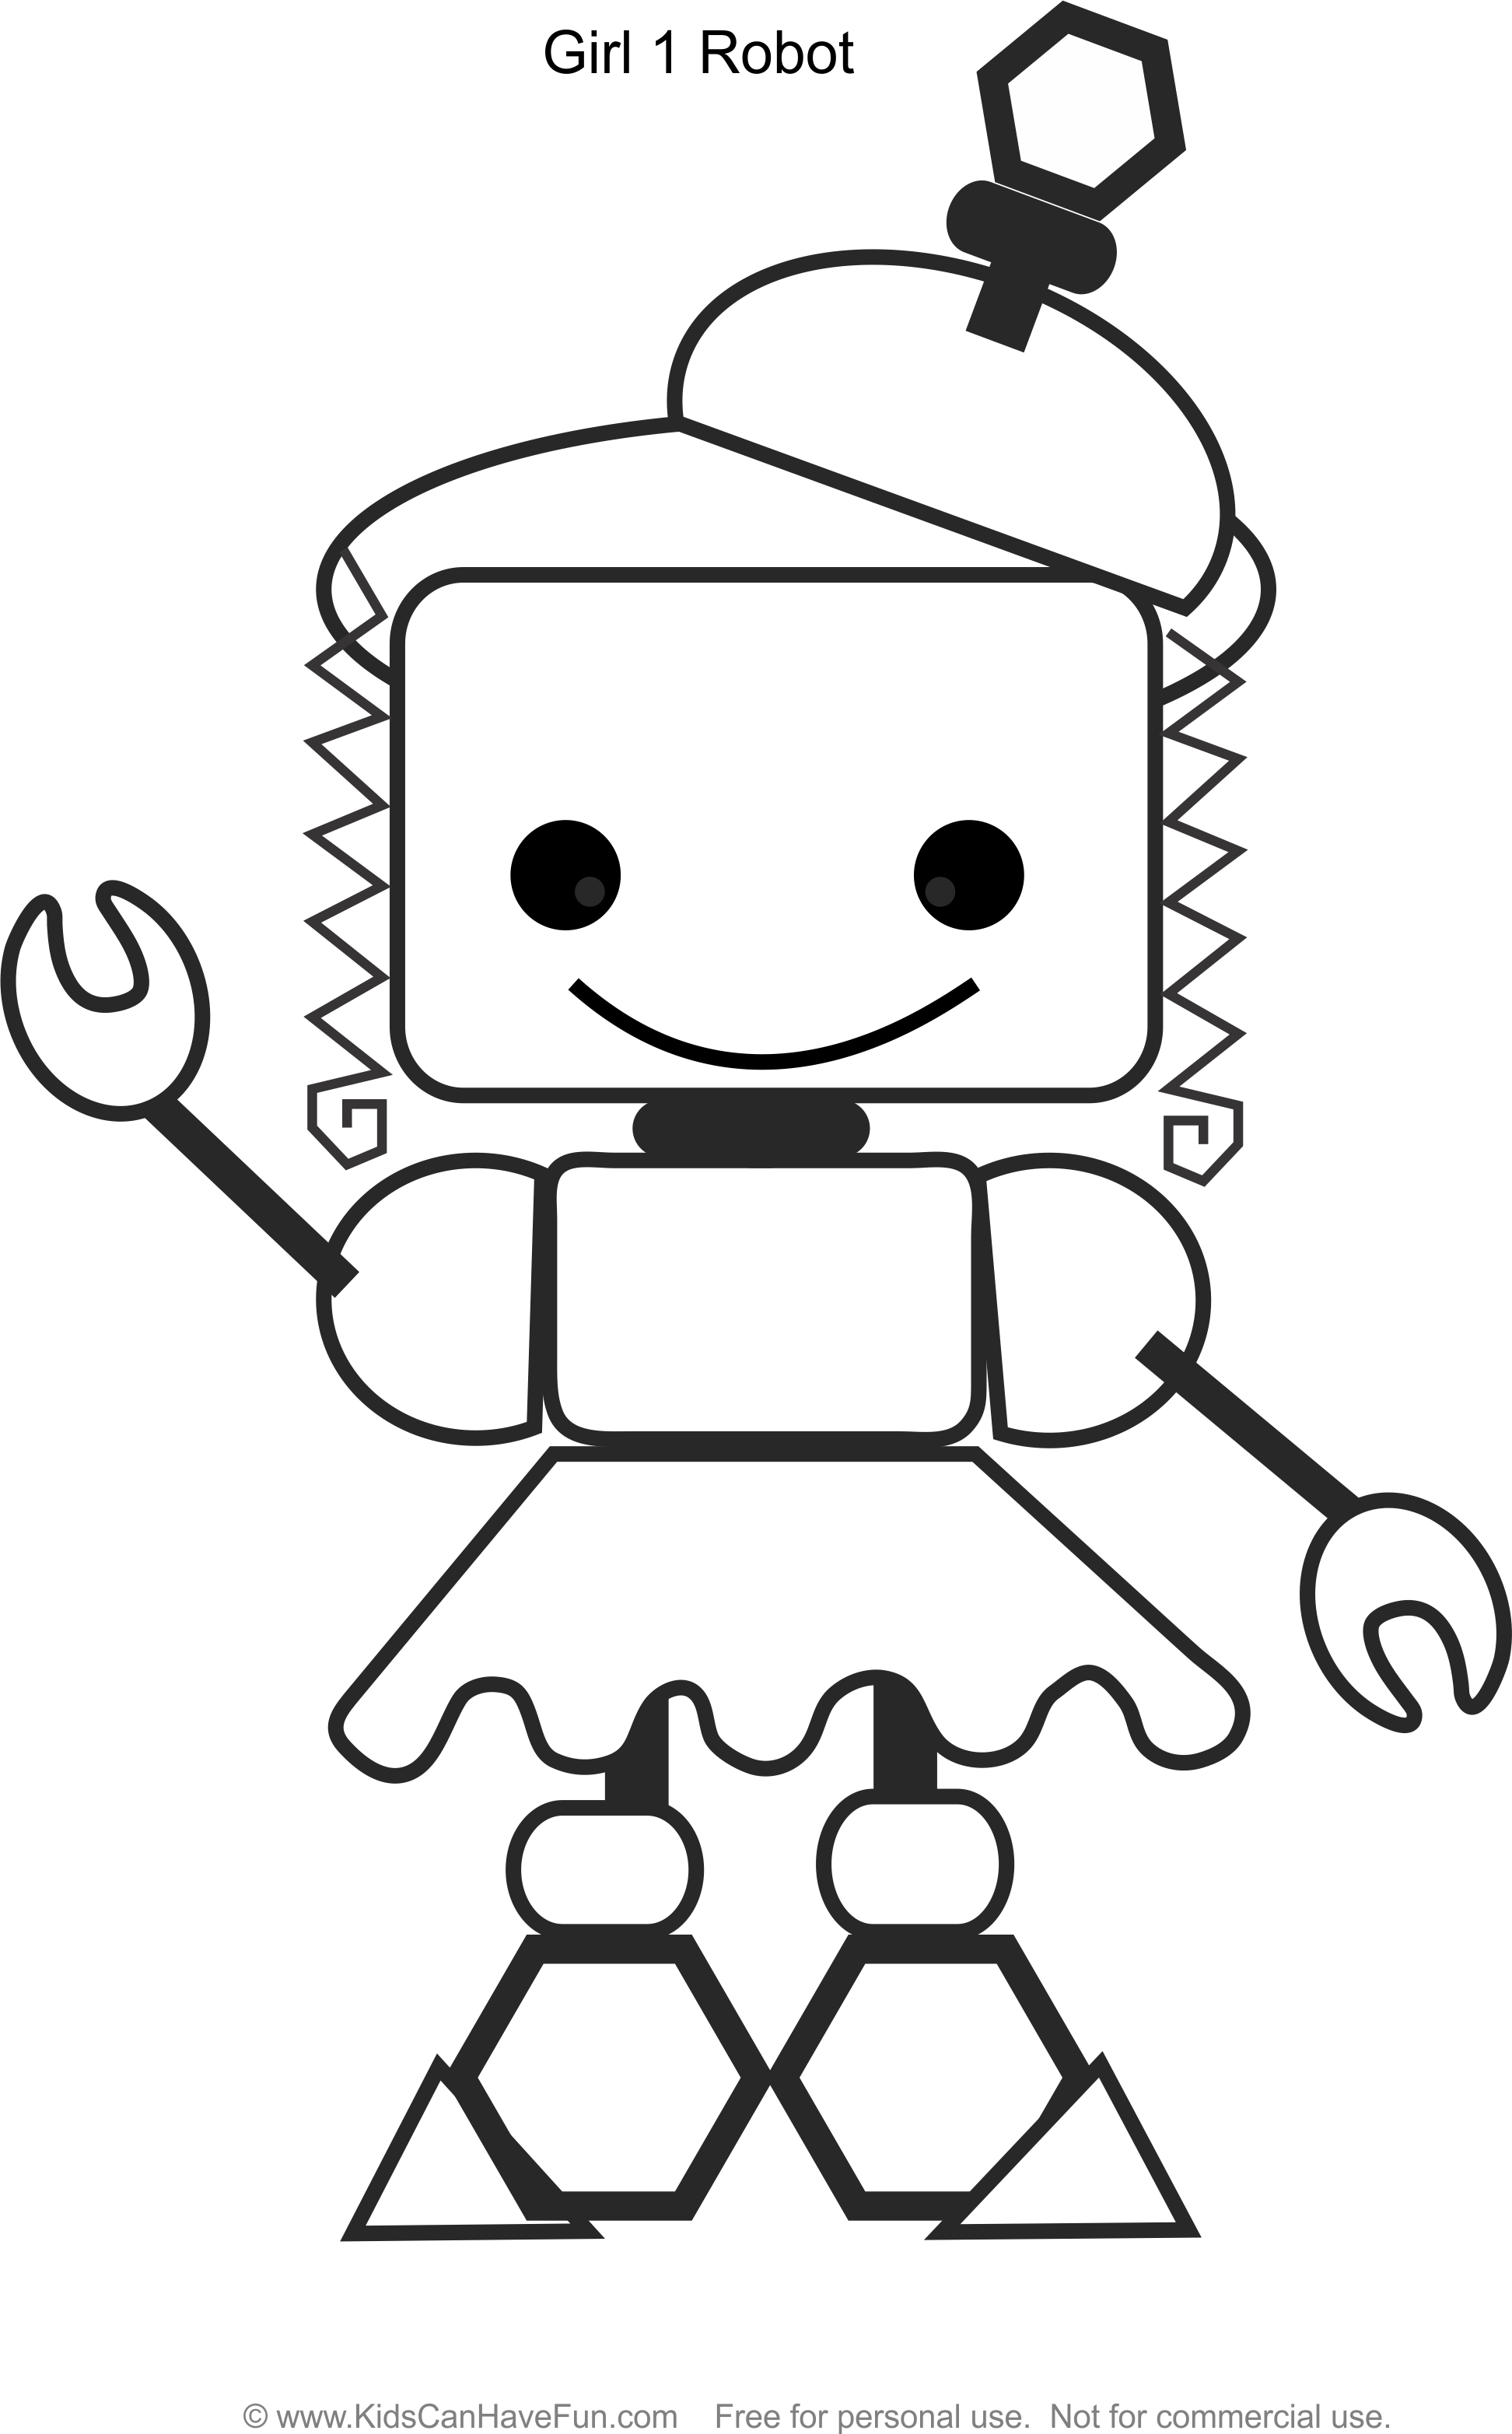 Coloring sheets robots - Find This Pin And More On Robot Coloring Pages By Kidscanhavefun